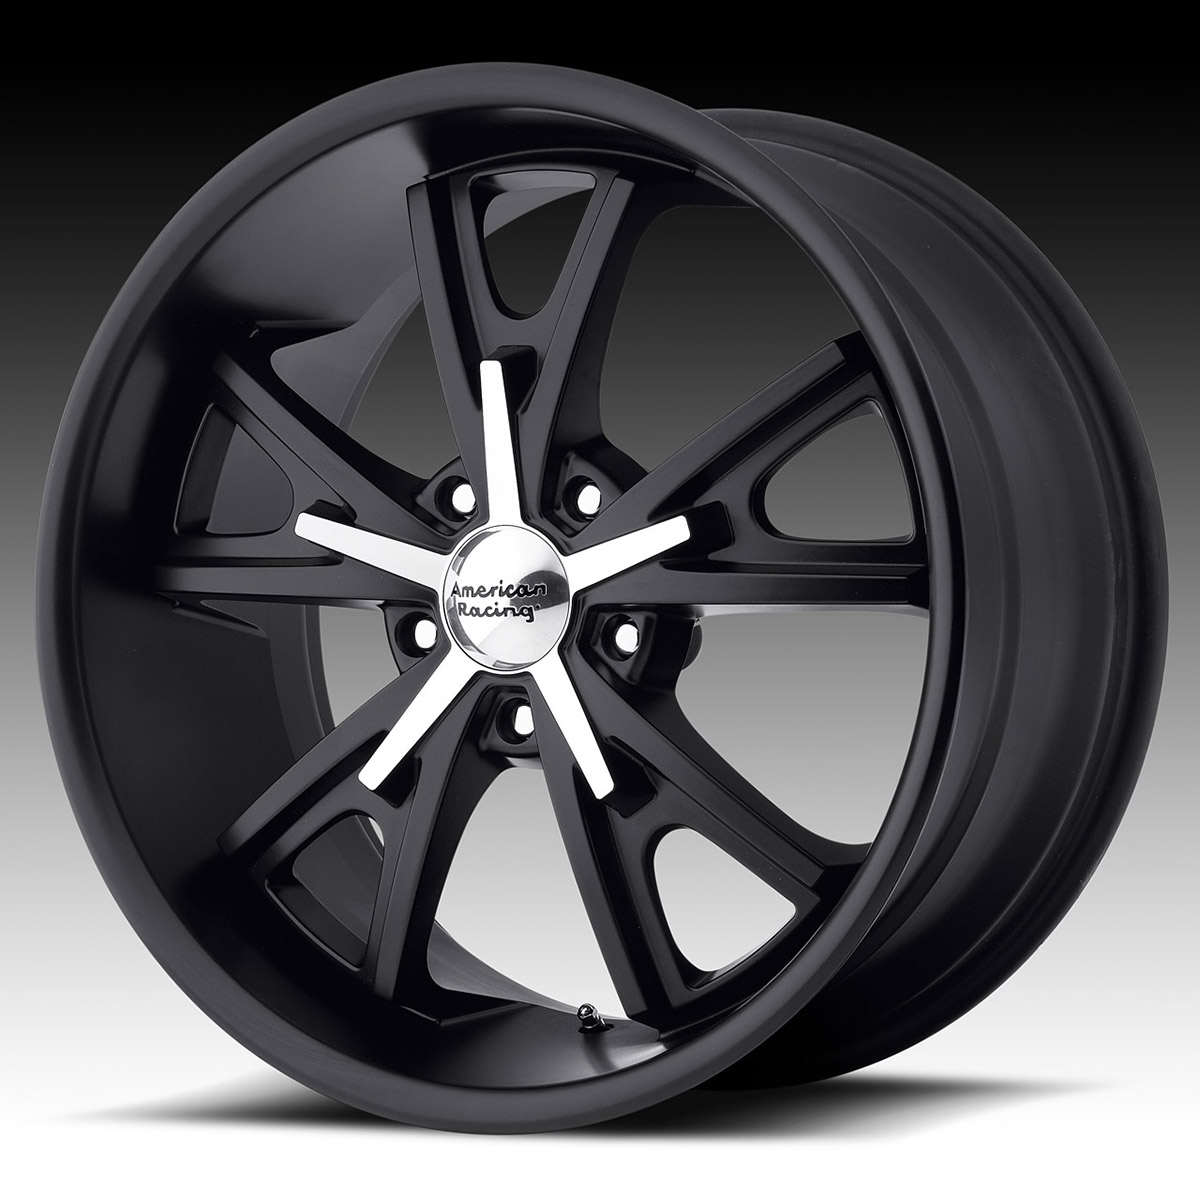 The American Racing Vn801 Wheels Are All About Muscle